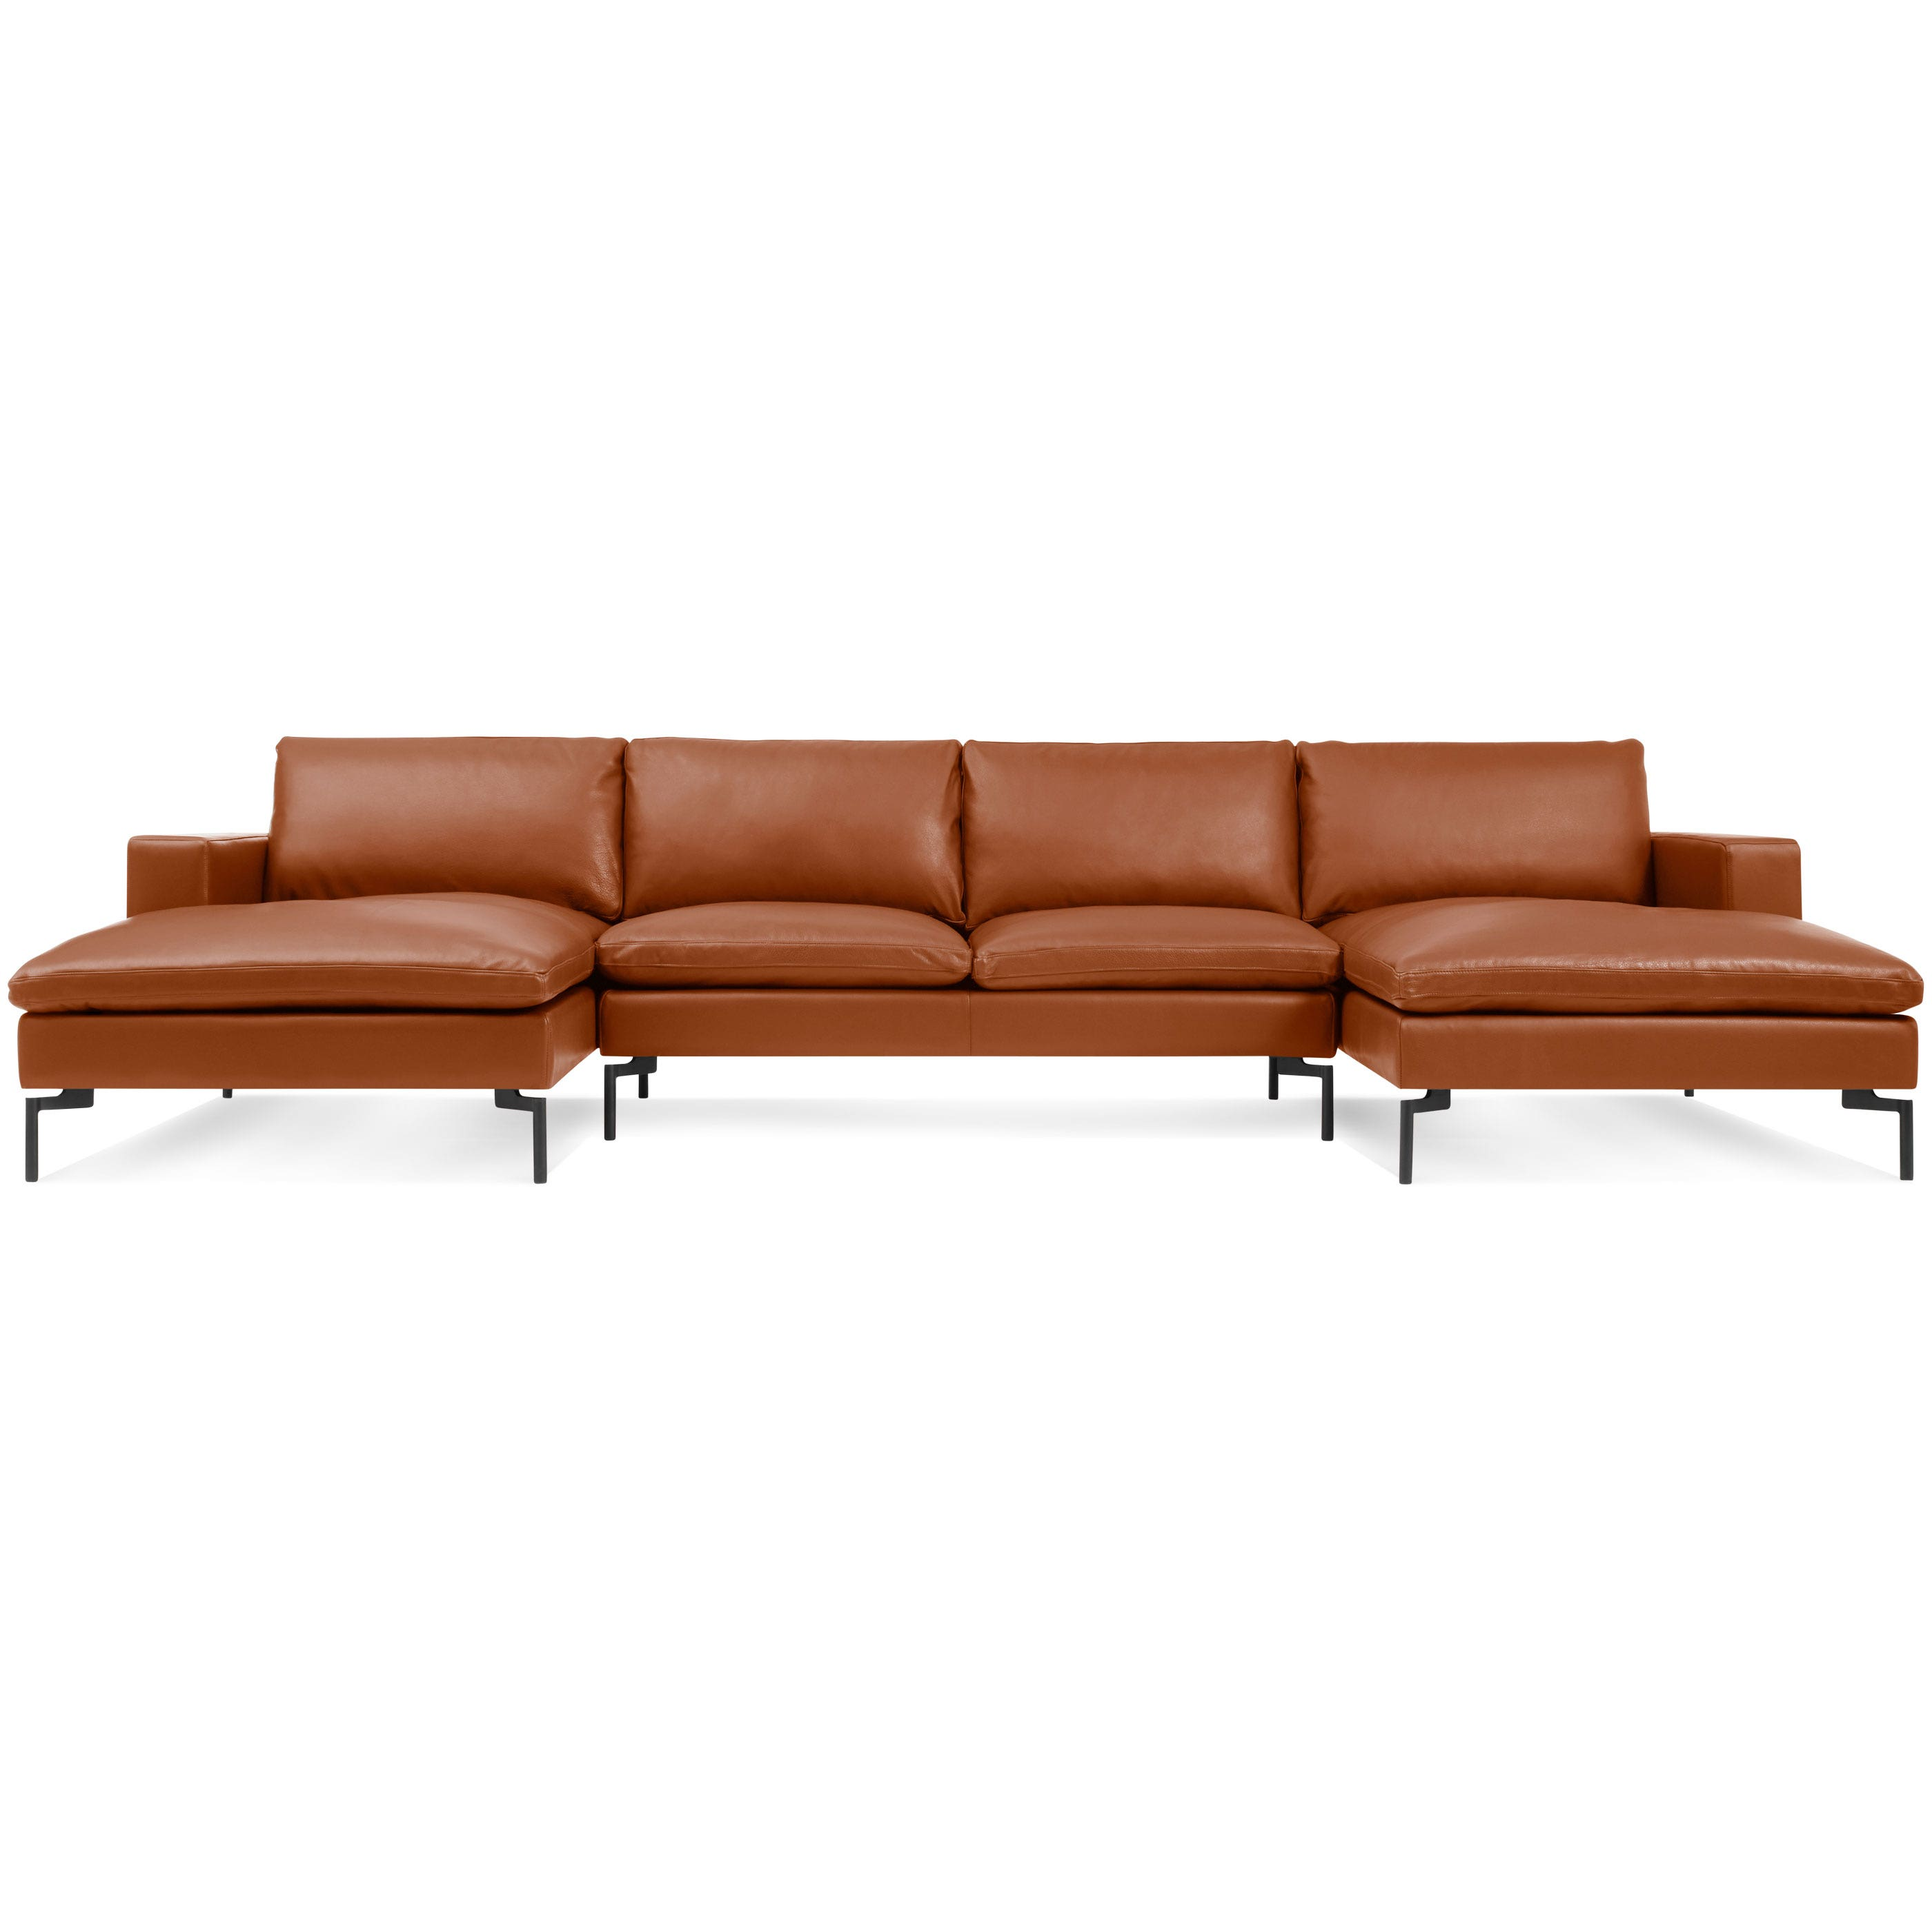 leather couch sofa chaise tan sectionals of sofas grey size oversized full with sectional and curved around wrap